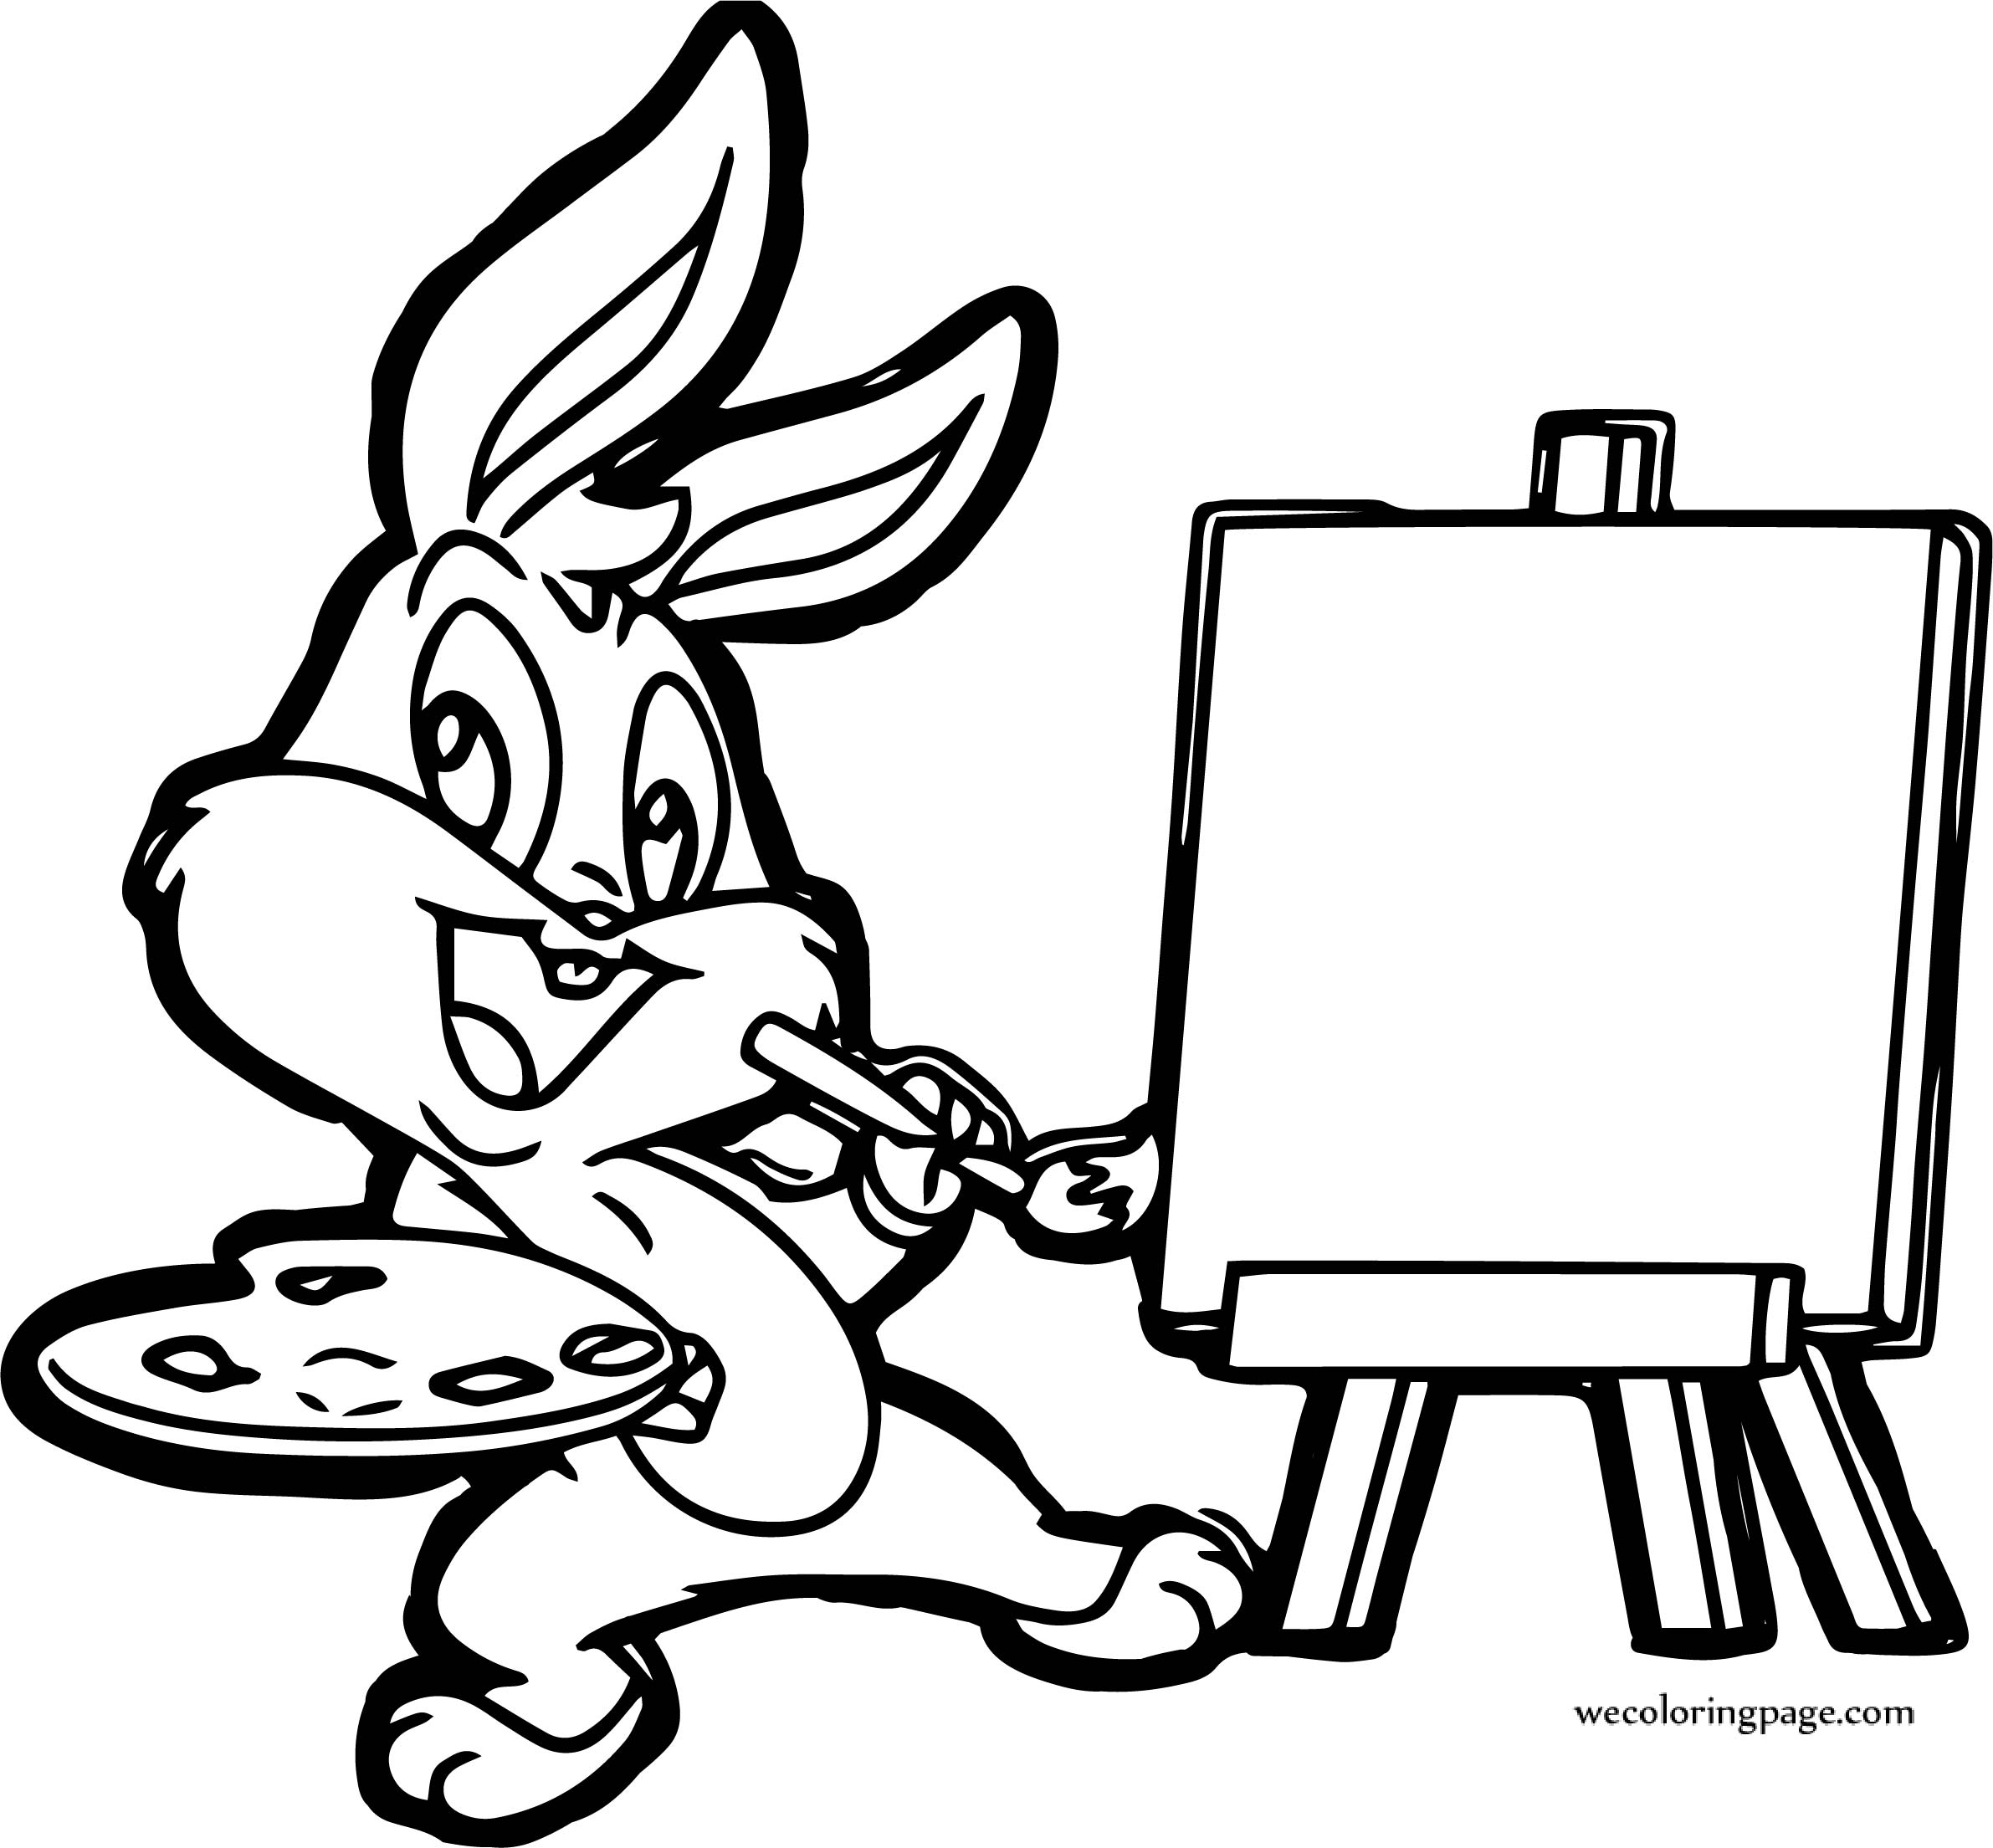 Bugs Bunny Painting Cartoon Coloring Page